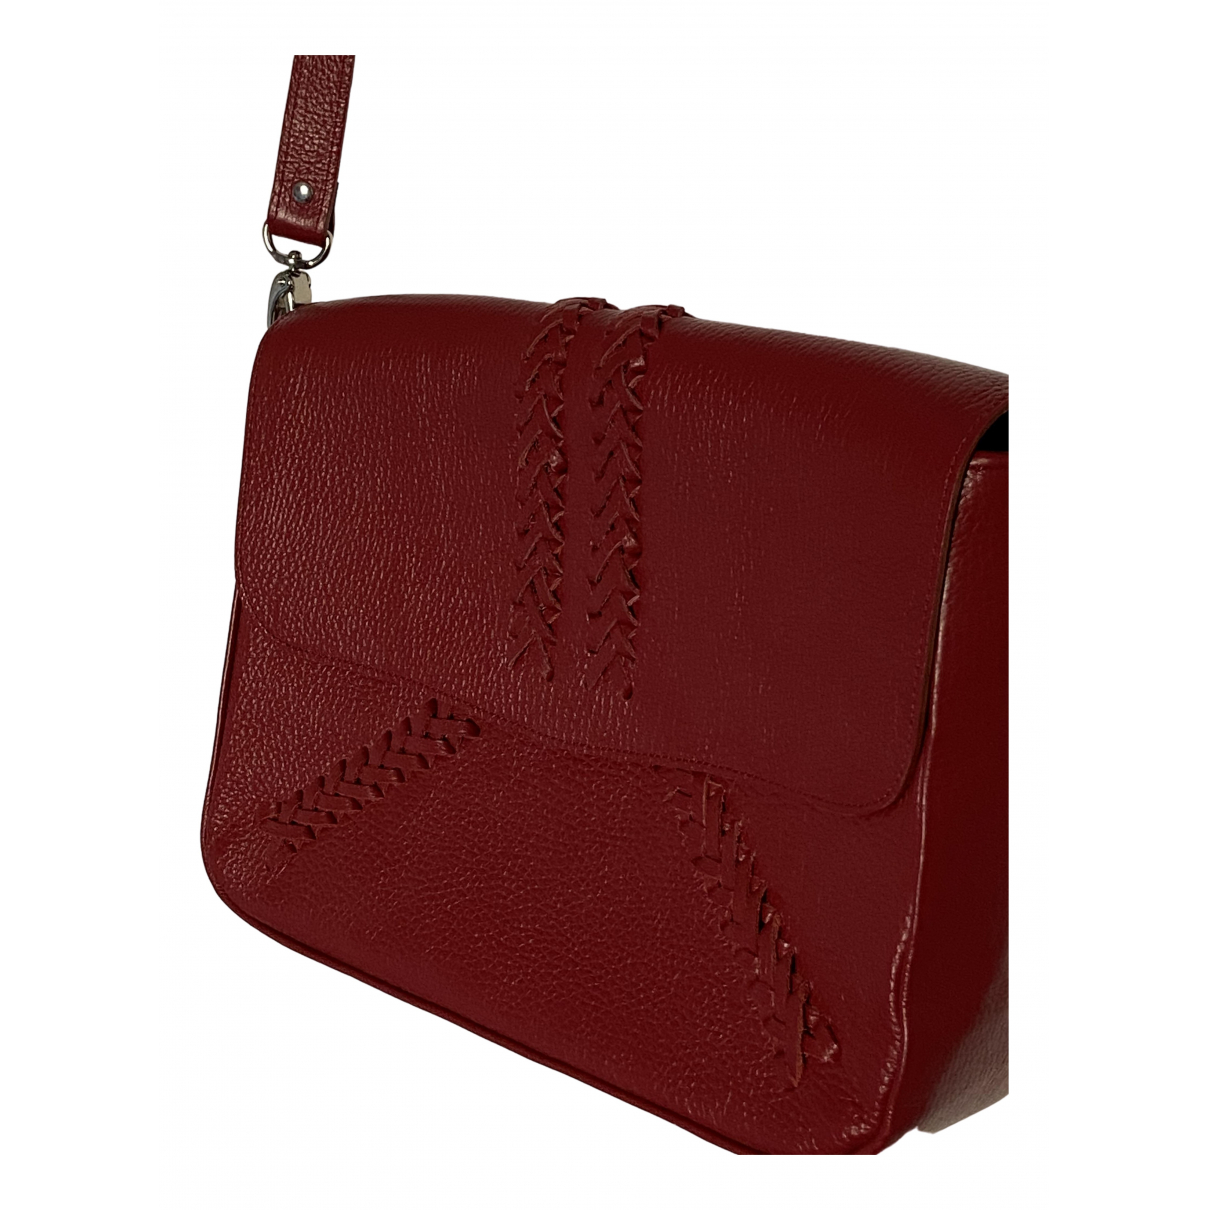 Ba&sh Fall Winter 2019 Handtasche in  Rot Leder